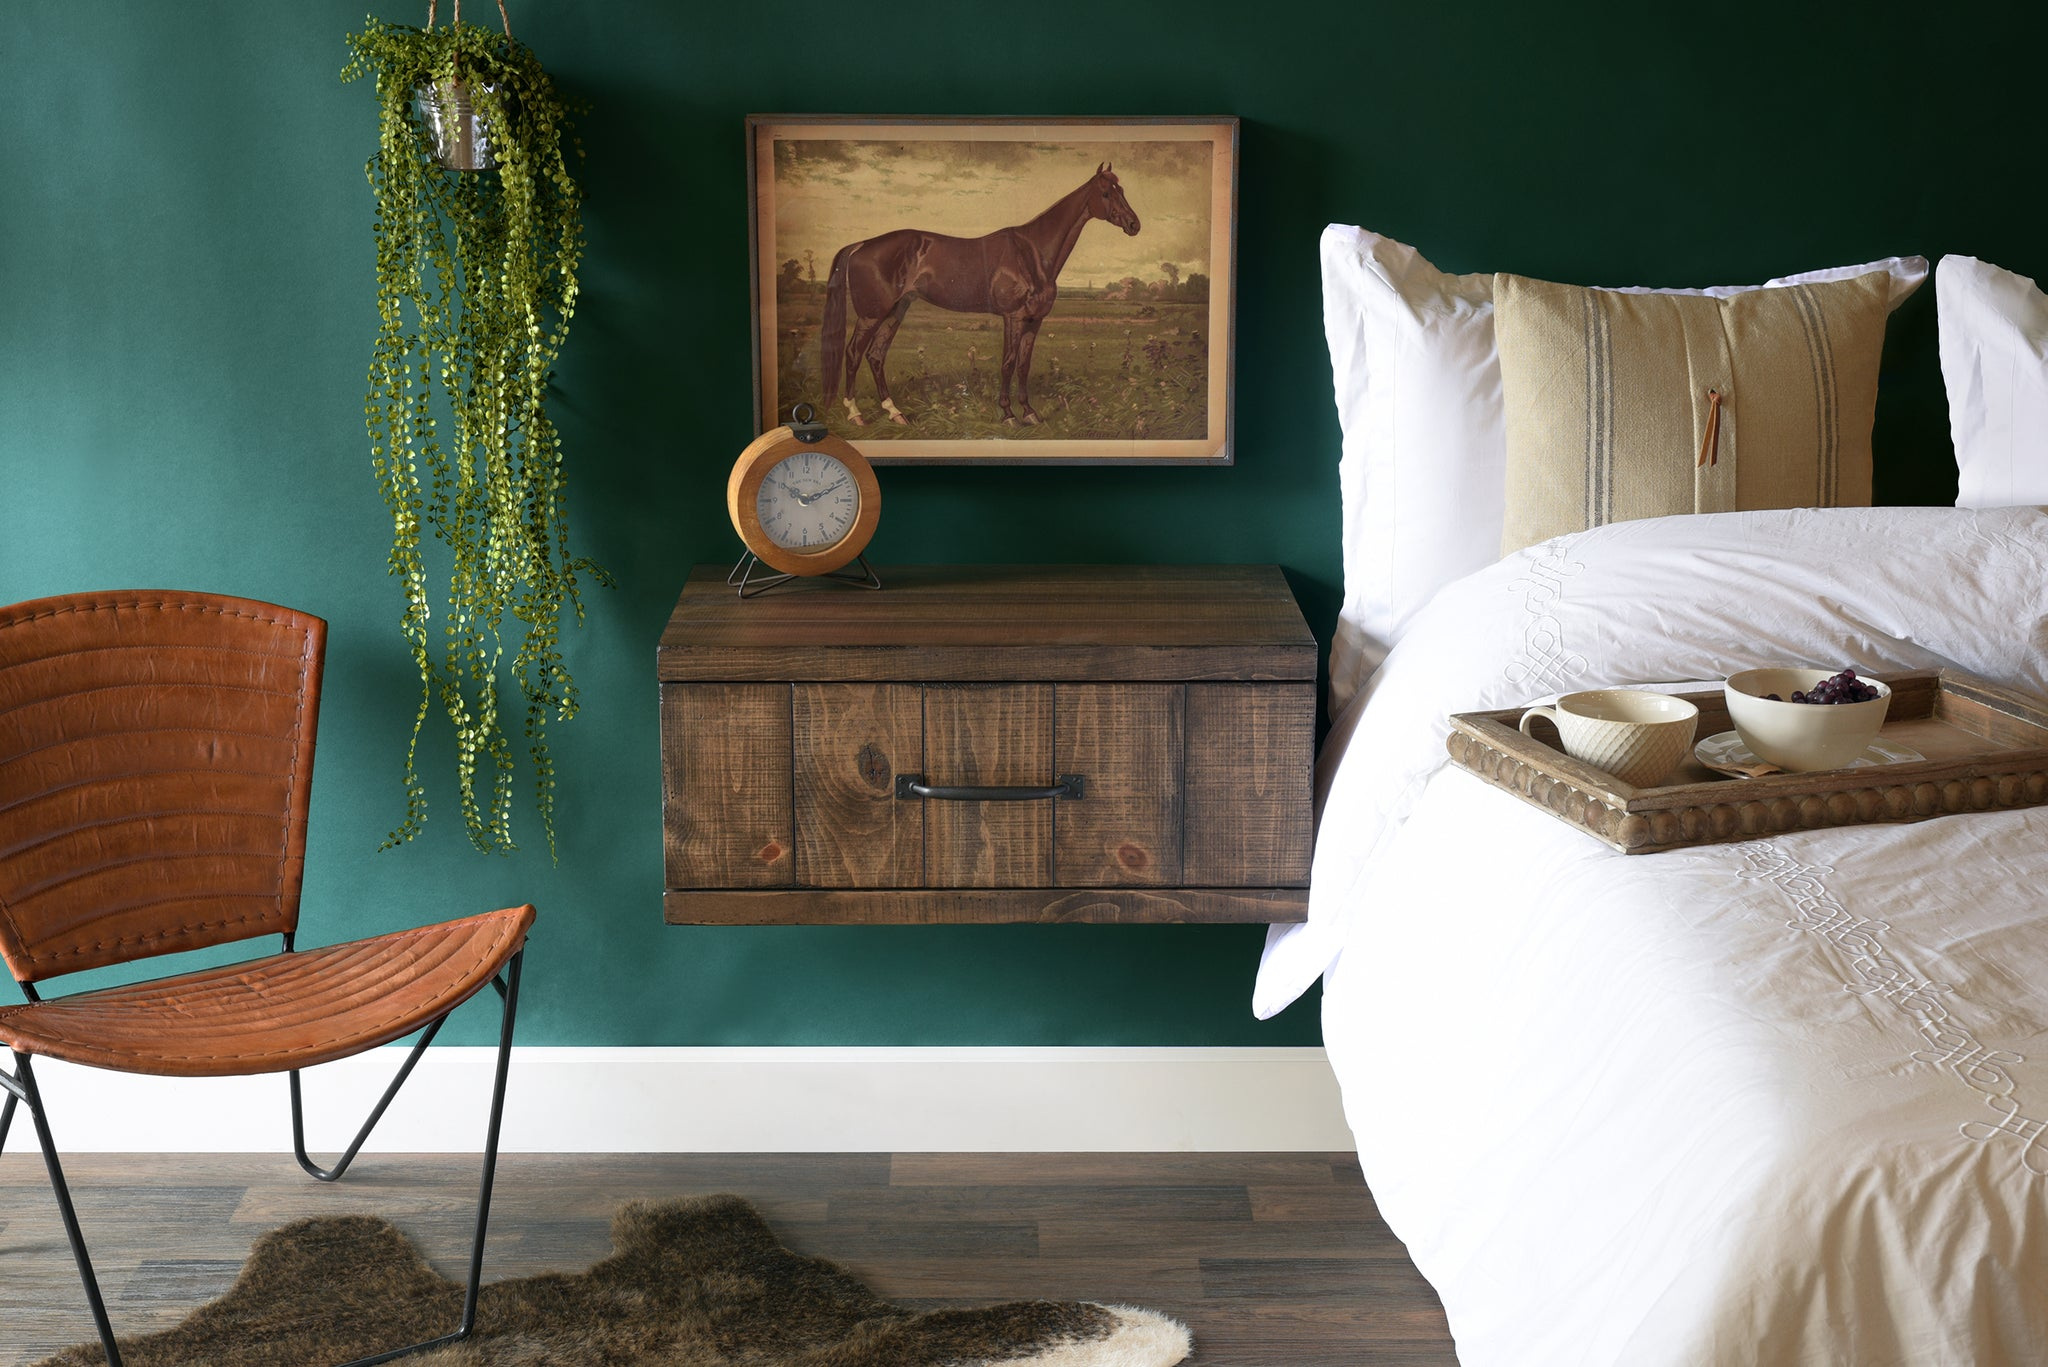 Rustic Wall Mounted Nightstands - Farmhouse Floating Drawers - Spice - Set of 2 - OB 30% OFF!